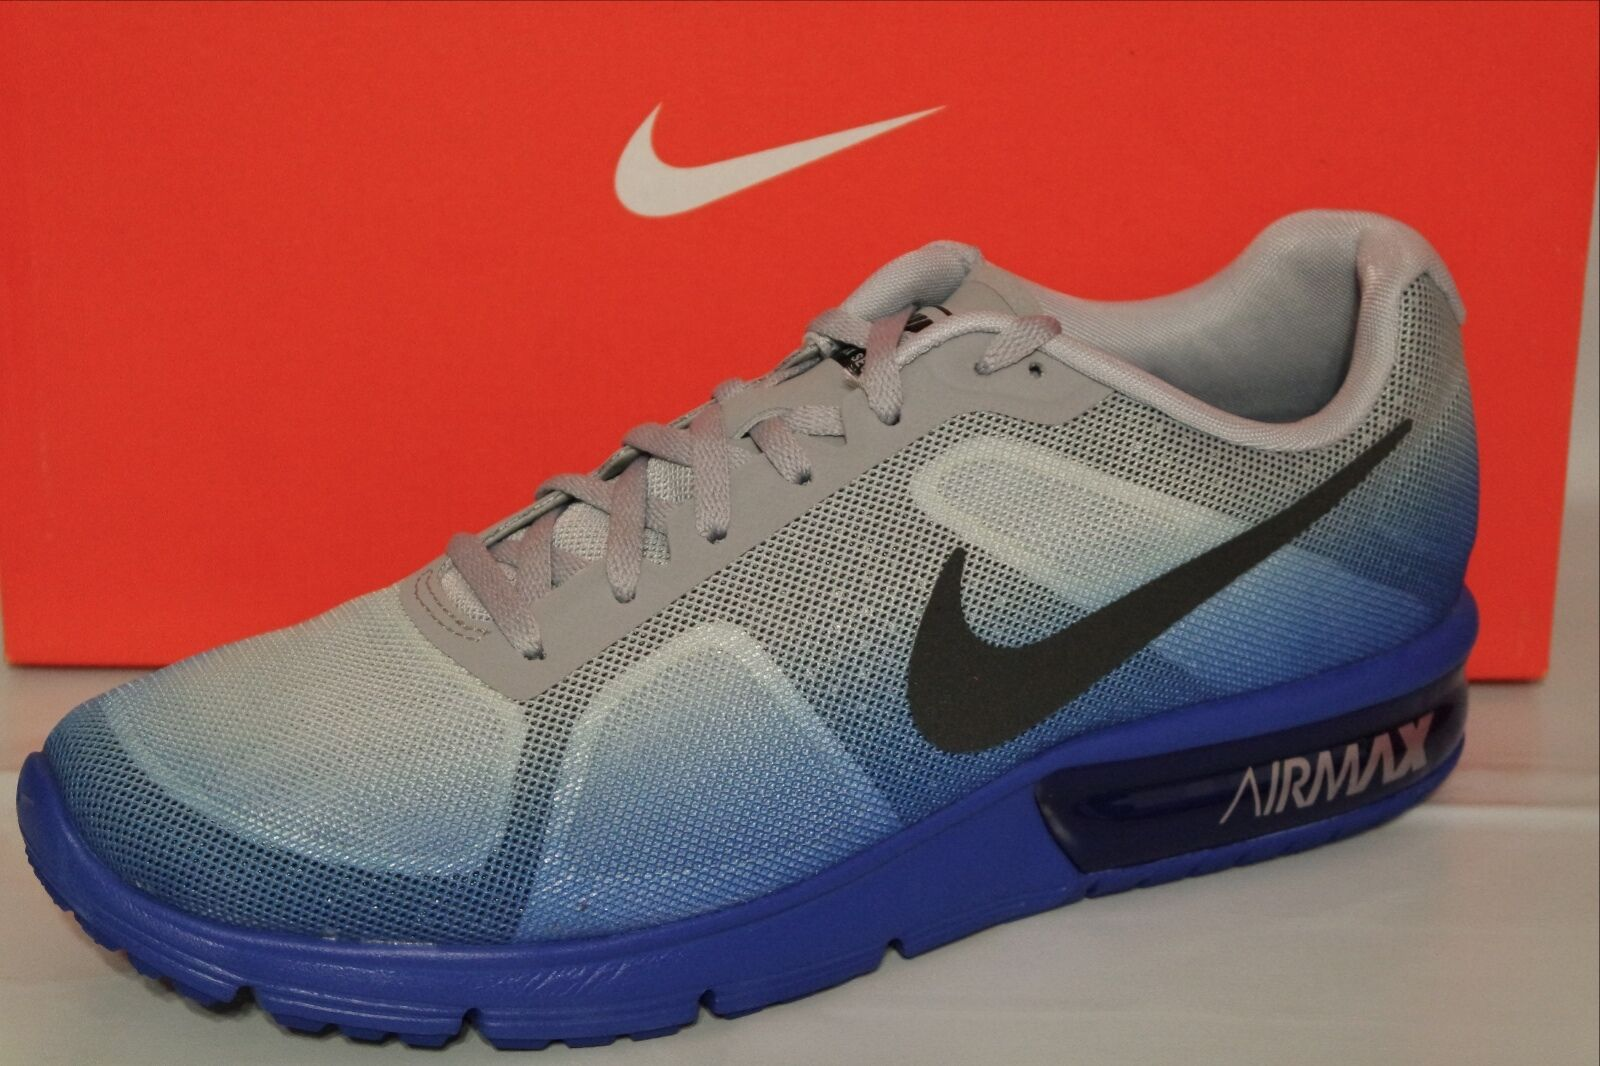 NIKE AIR MAX SEQUENT MEN'S'RUNNING SHOES, RACER BLUE/BLK/ GREY/WHITE 719912 405